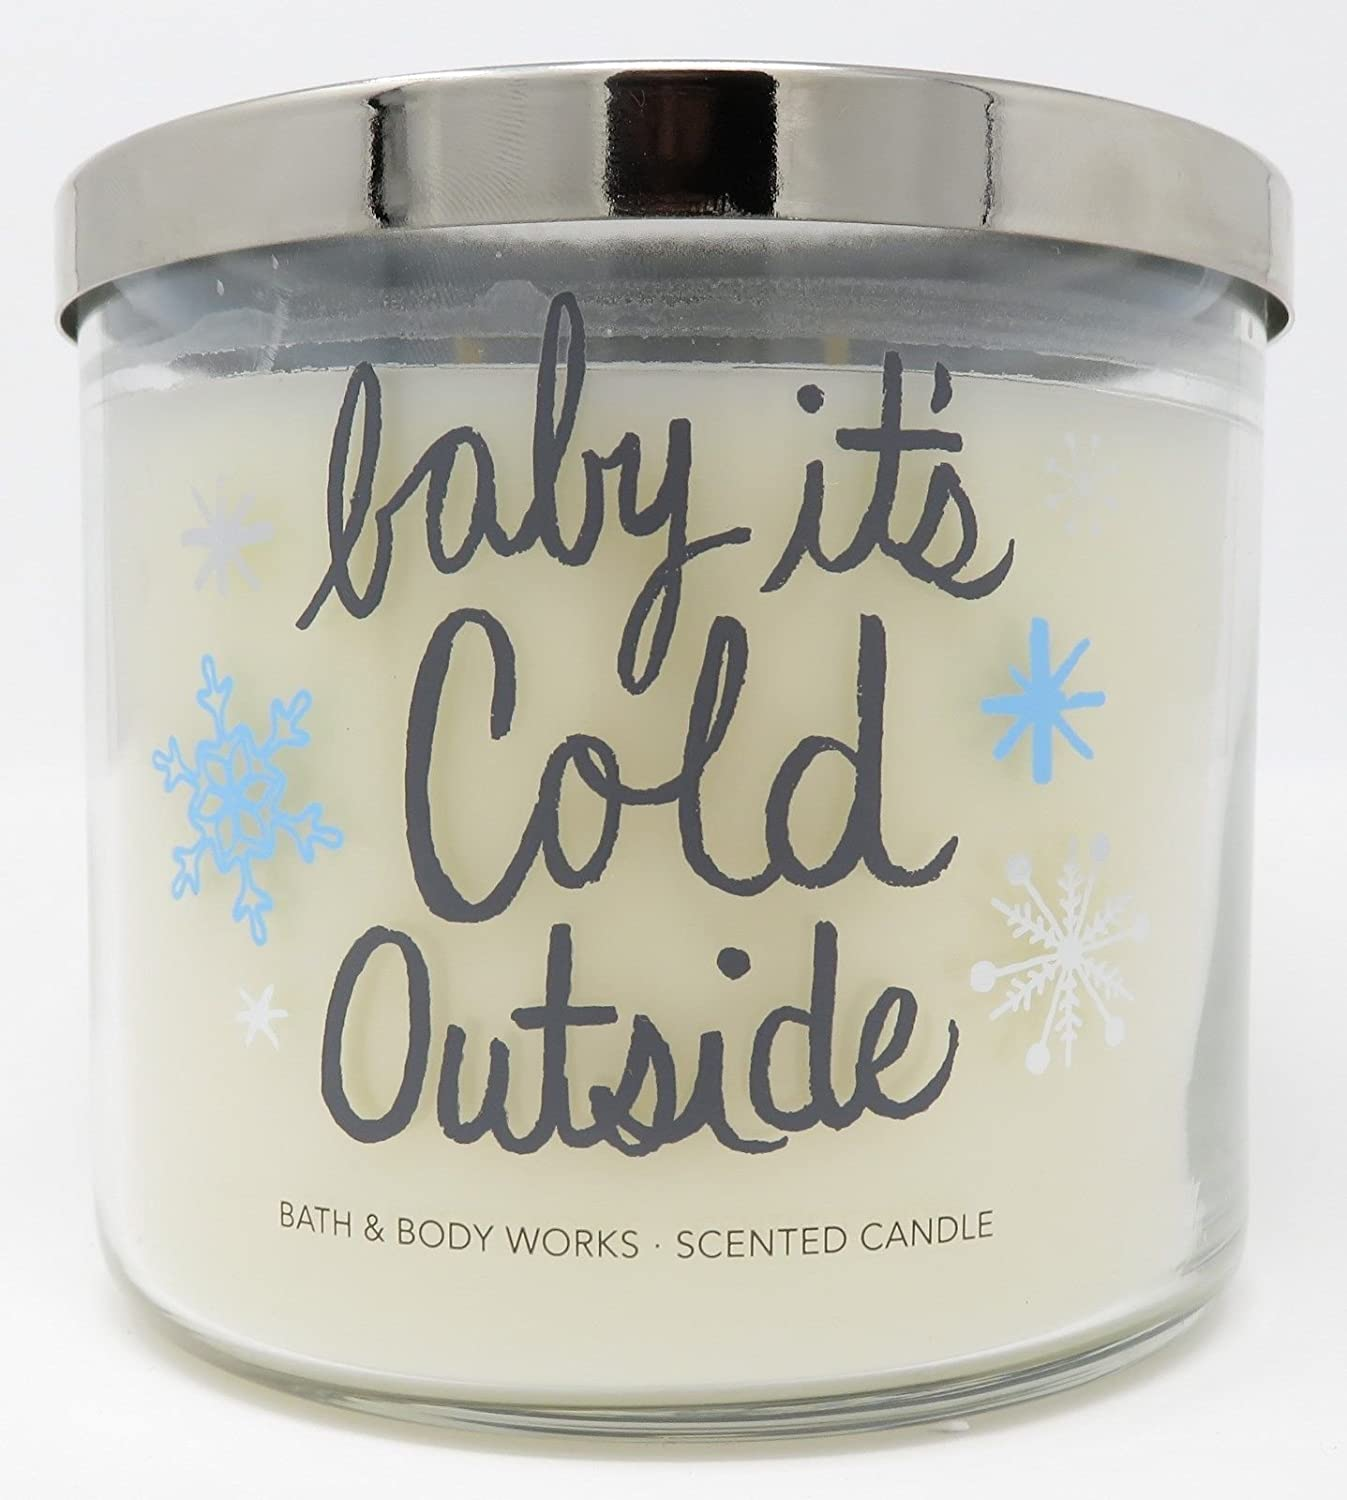 Bath & Body Works Fireside 14.5 oz. 3-Wick Candle - baby it's Cold Outside BBW